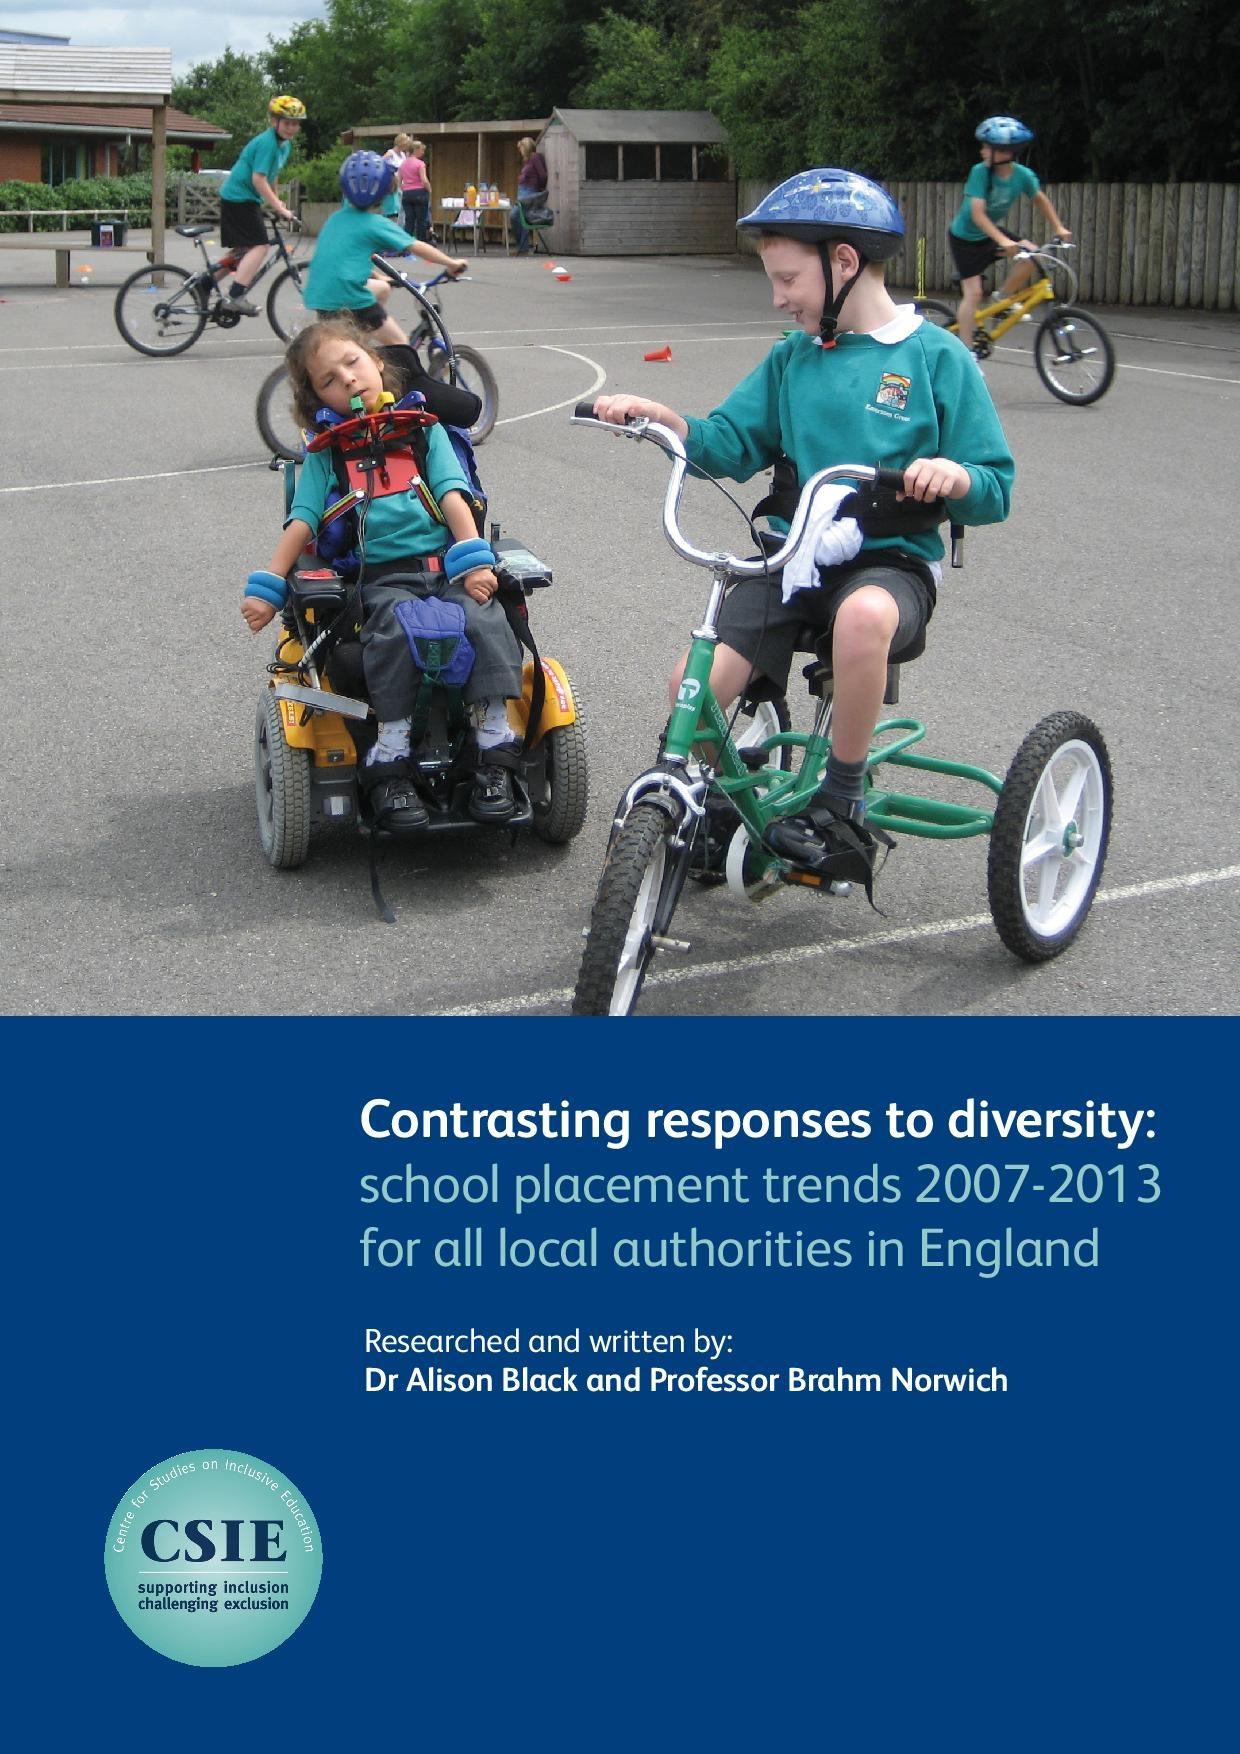 Contrasting responses to diversity: school placement trends 2007-2013 for all local authorities in England (2014) cover image